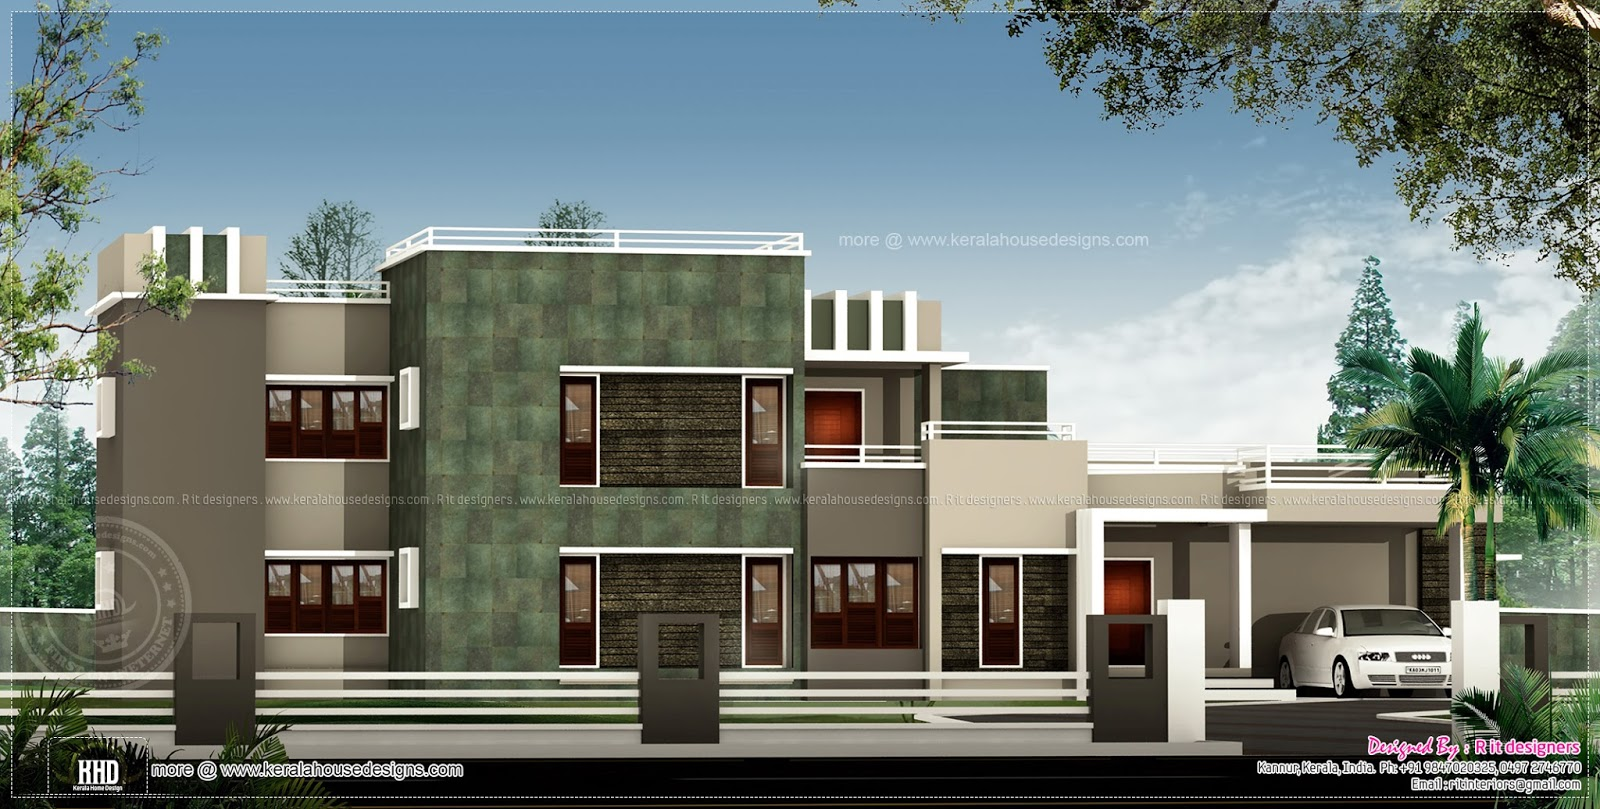 Unique contemporary home in 2993 sq feet home kerala plans for Unique modern house plans